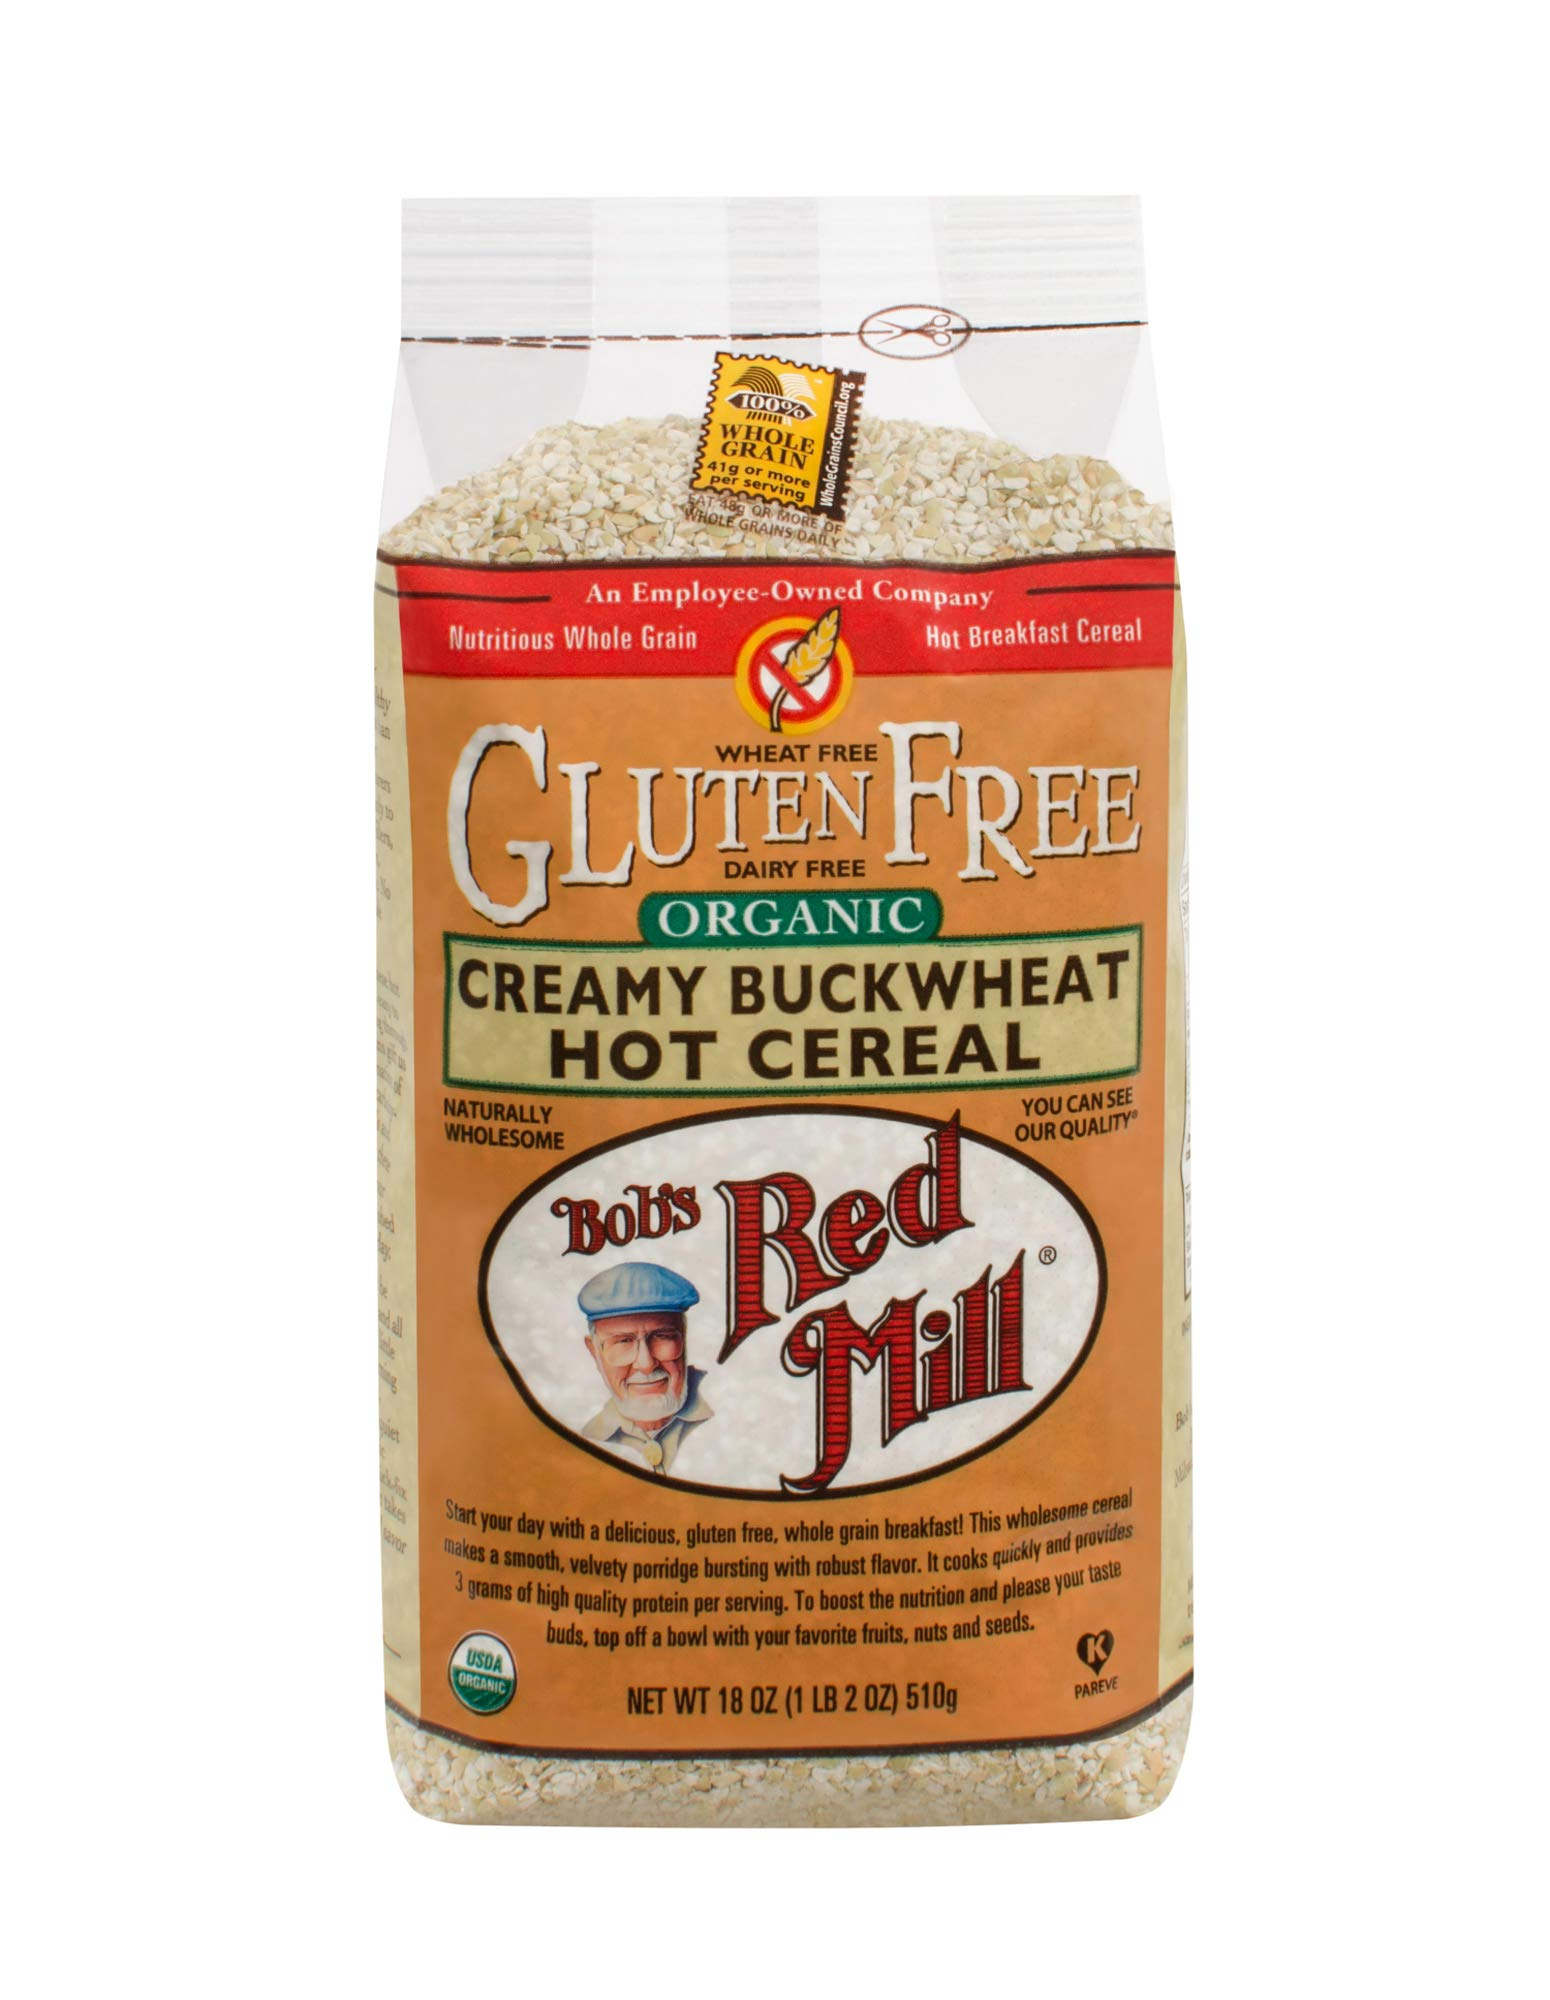 Bob's Red Mill Gluten Free Organic Creamy Buckwheat Hot Breakfast Cereal, 18 Oz (4 Pack) by Bob's Red Mill